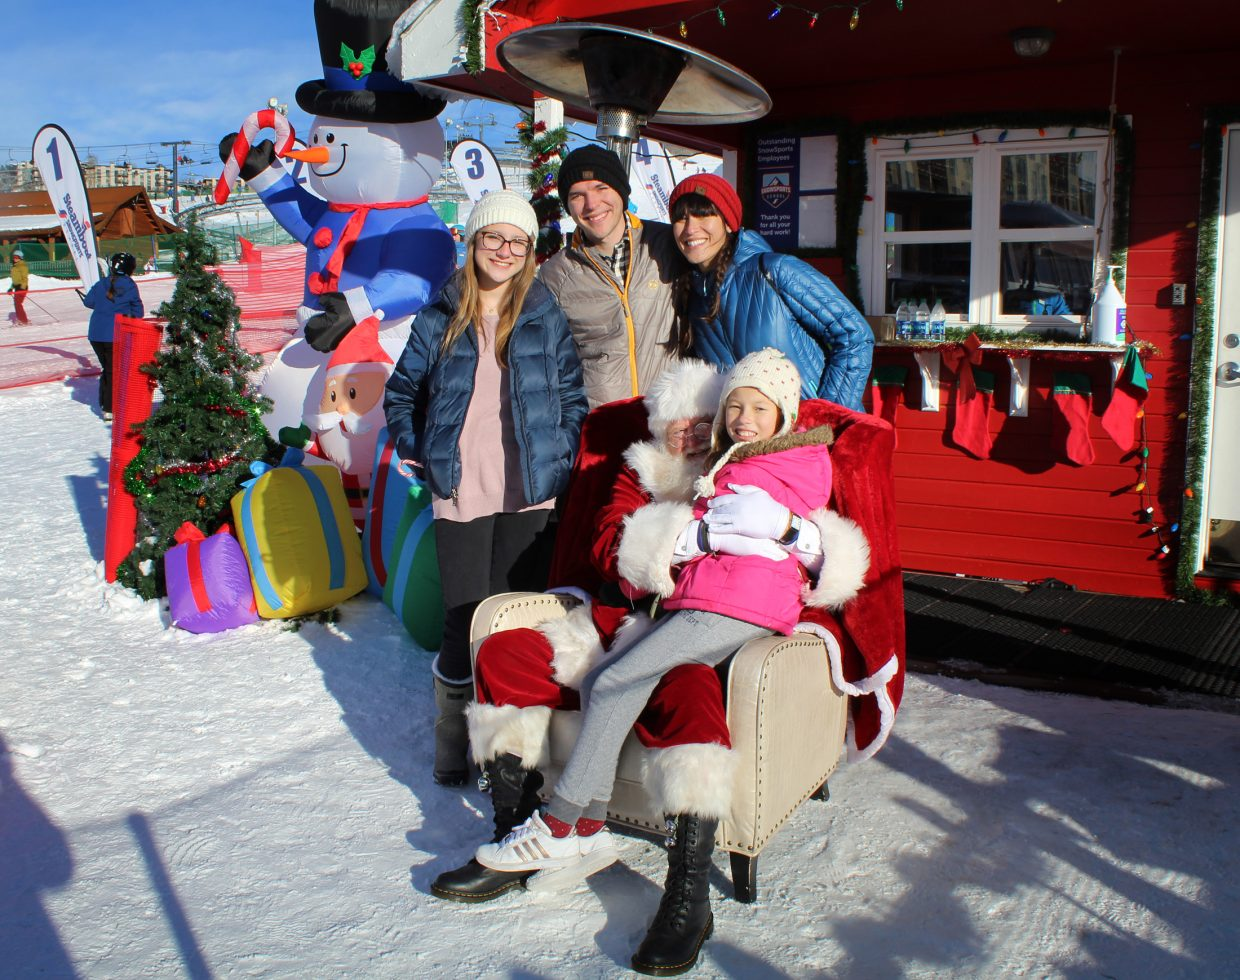 A family visiting from Texas poses with Santa Claus at the base area at Steamboat Resort during the Holiday Festival on Sunday. Pictured, from left, are Avy Shaw, Zack Ratkovich, Mindy Van Kuren, Andie Van Kuren and, of course, Santa Claus.